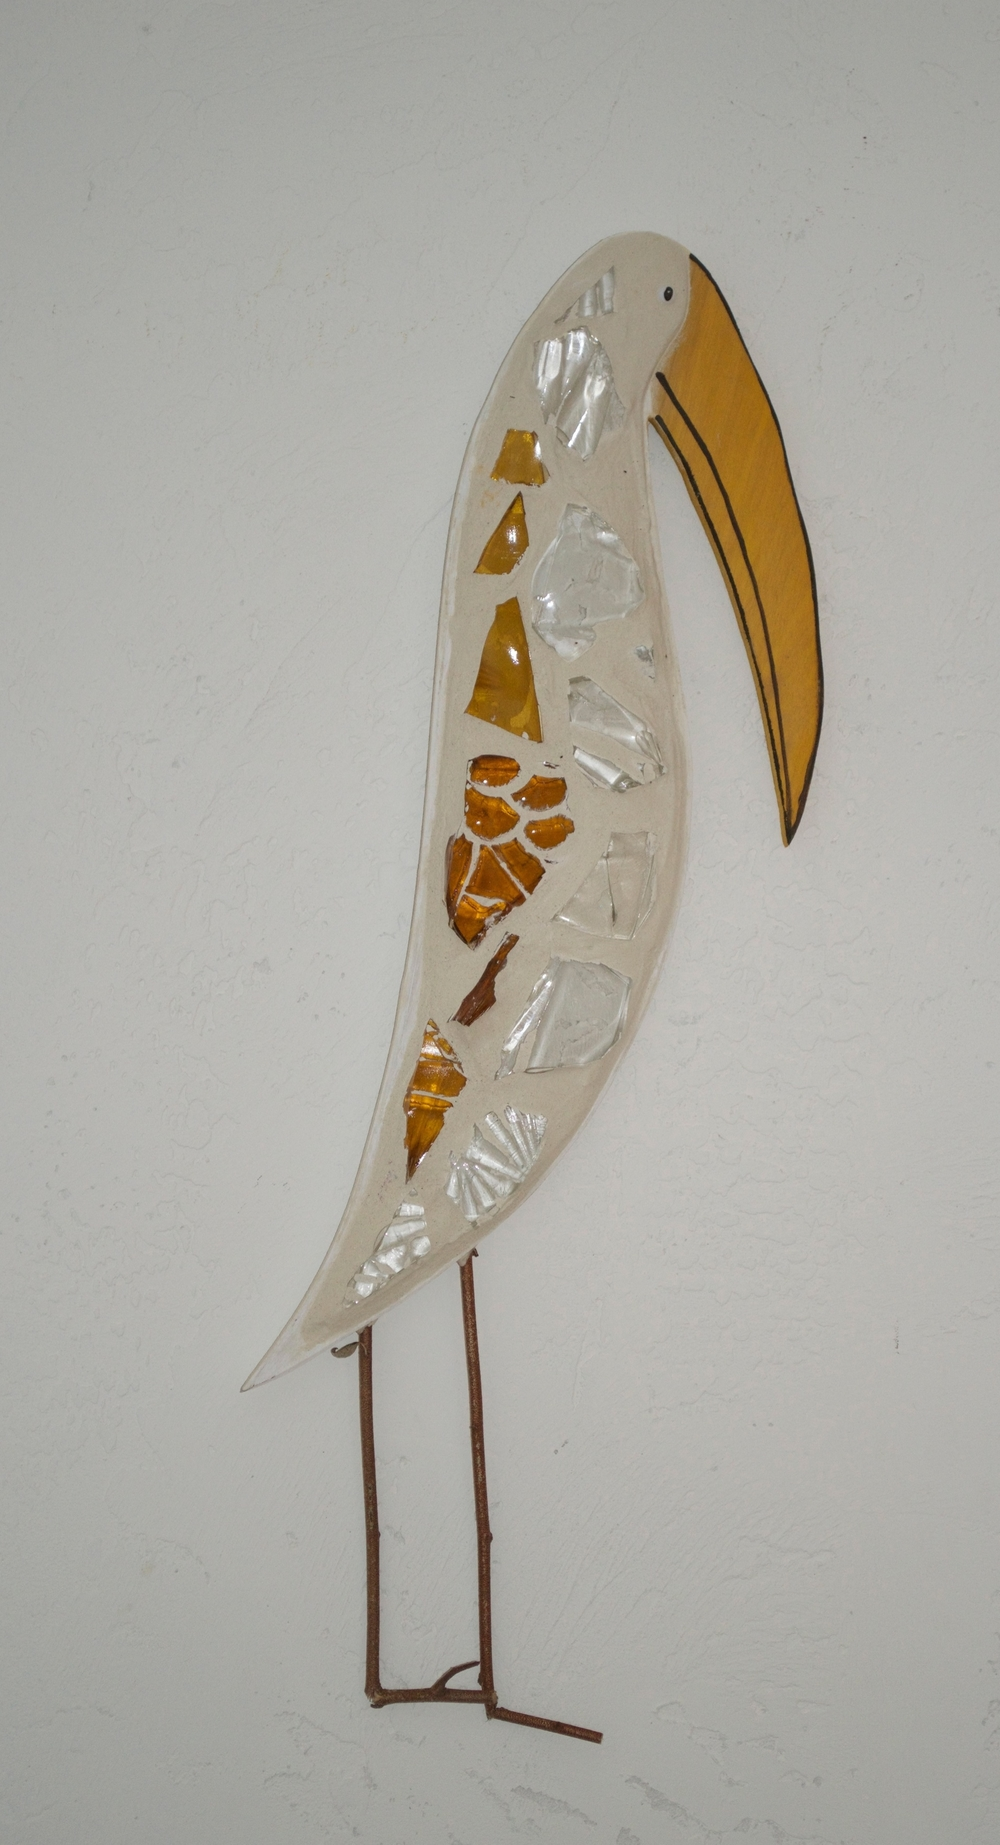 "Beach Art - Wood Stork - wood, glass, twigs - 7"" x 28"" - $85"